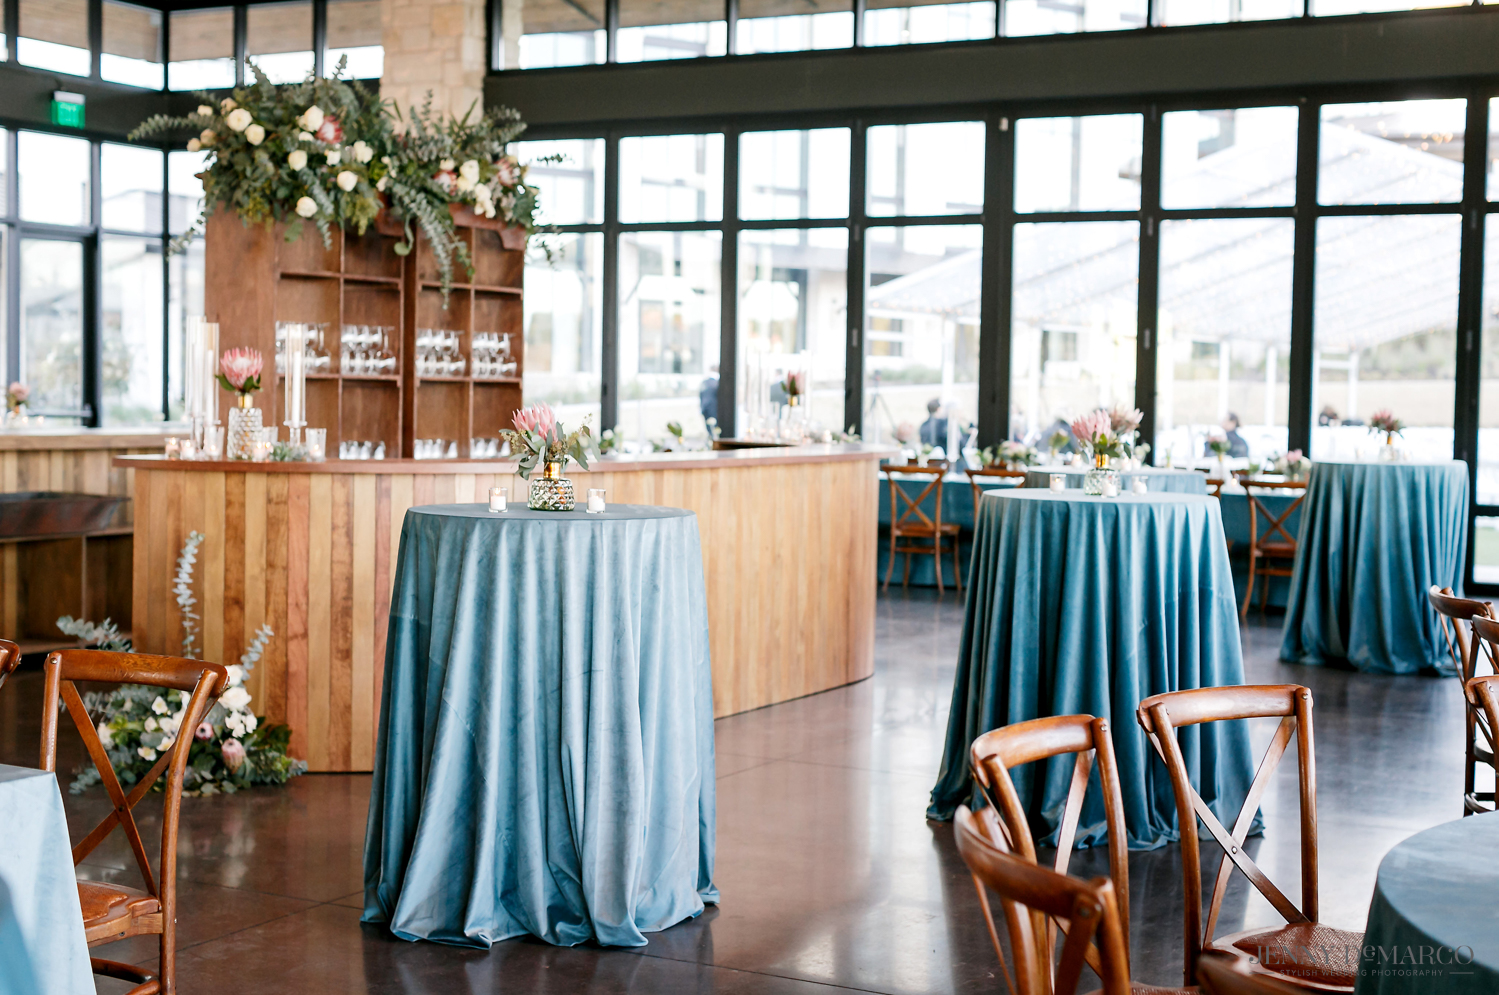 Blue table cloths at wedding reception